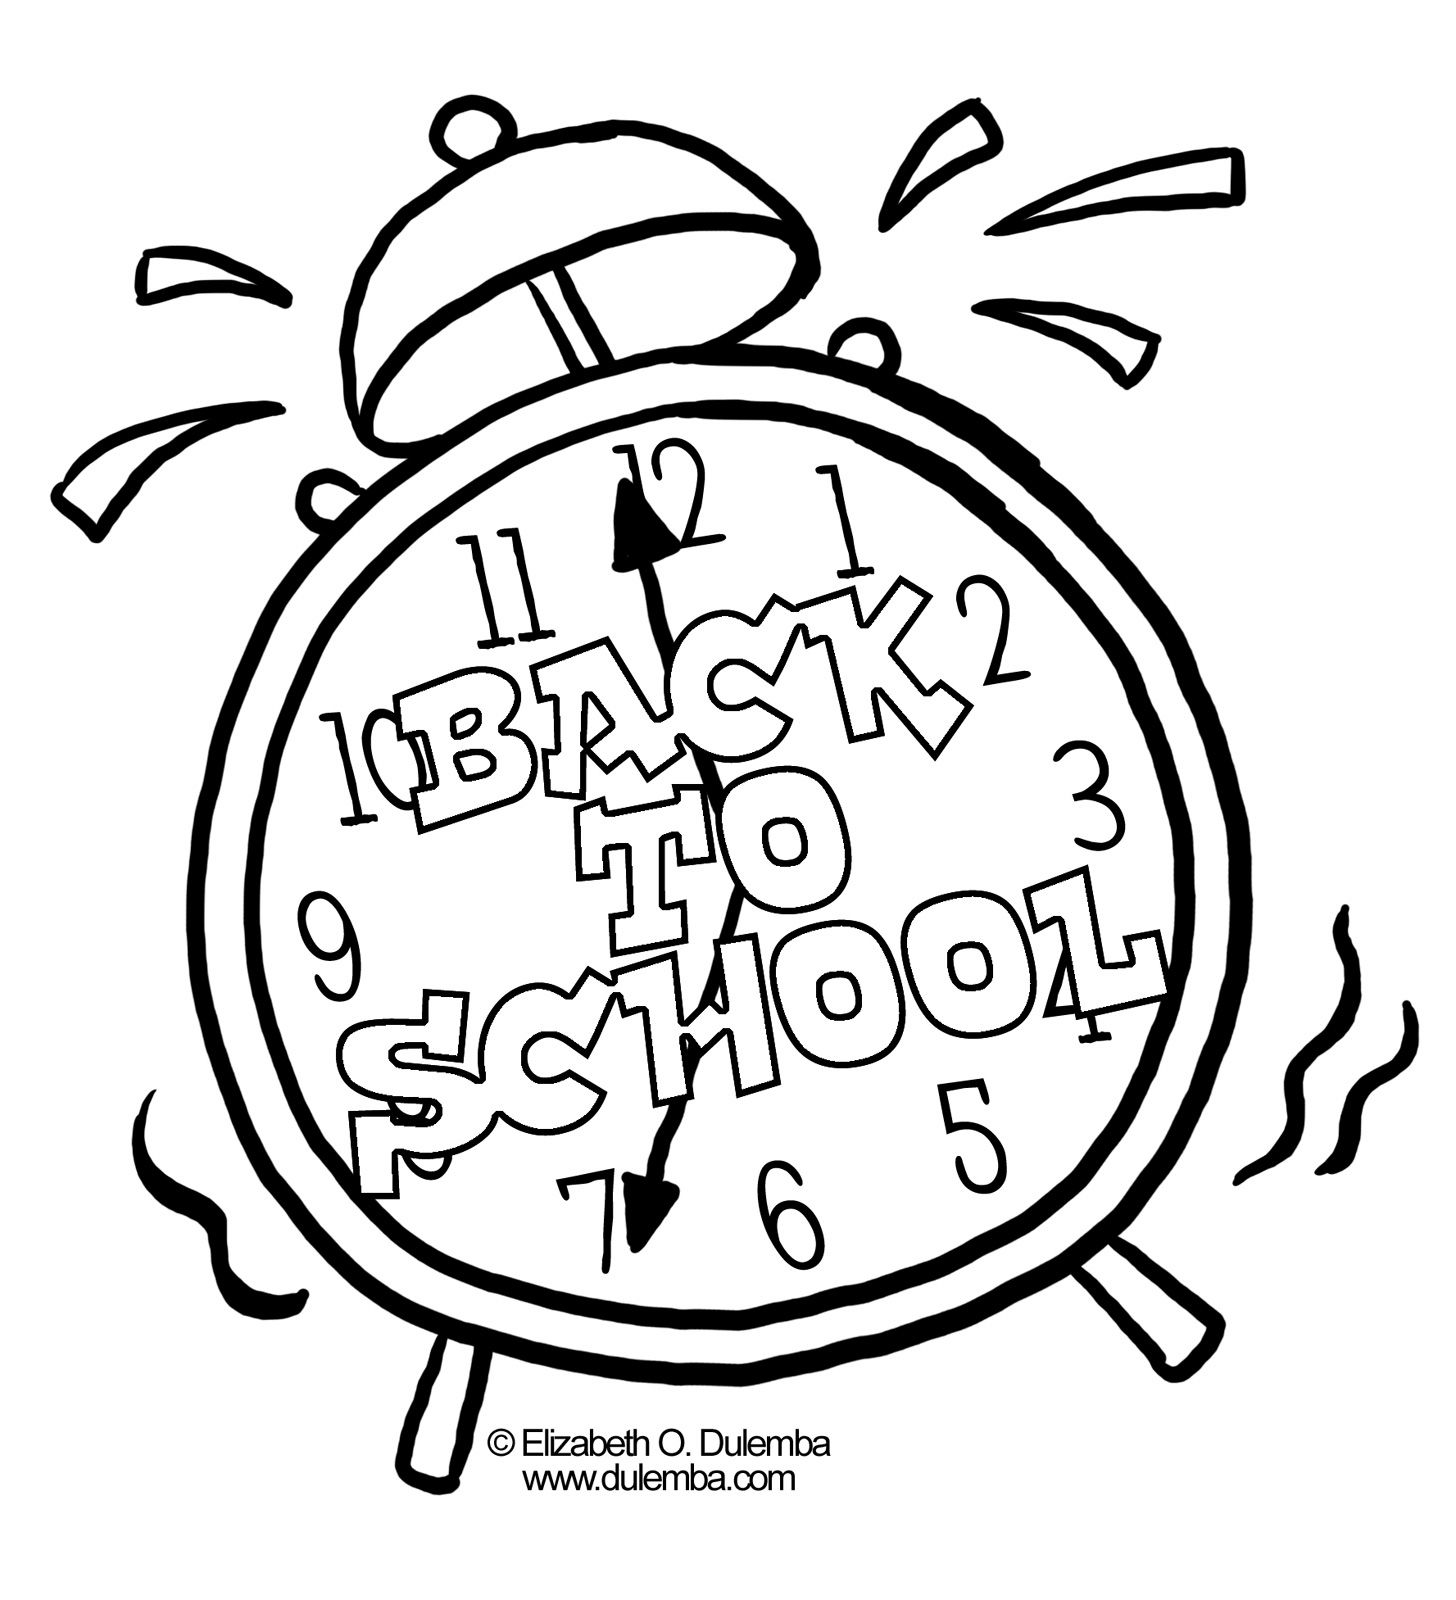 Colouring book pictures back to school google search for Back to school coloring pages printable